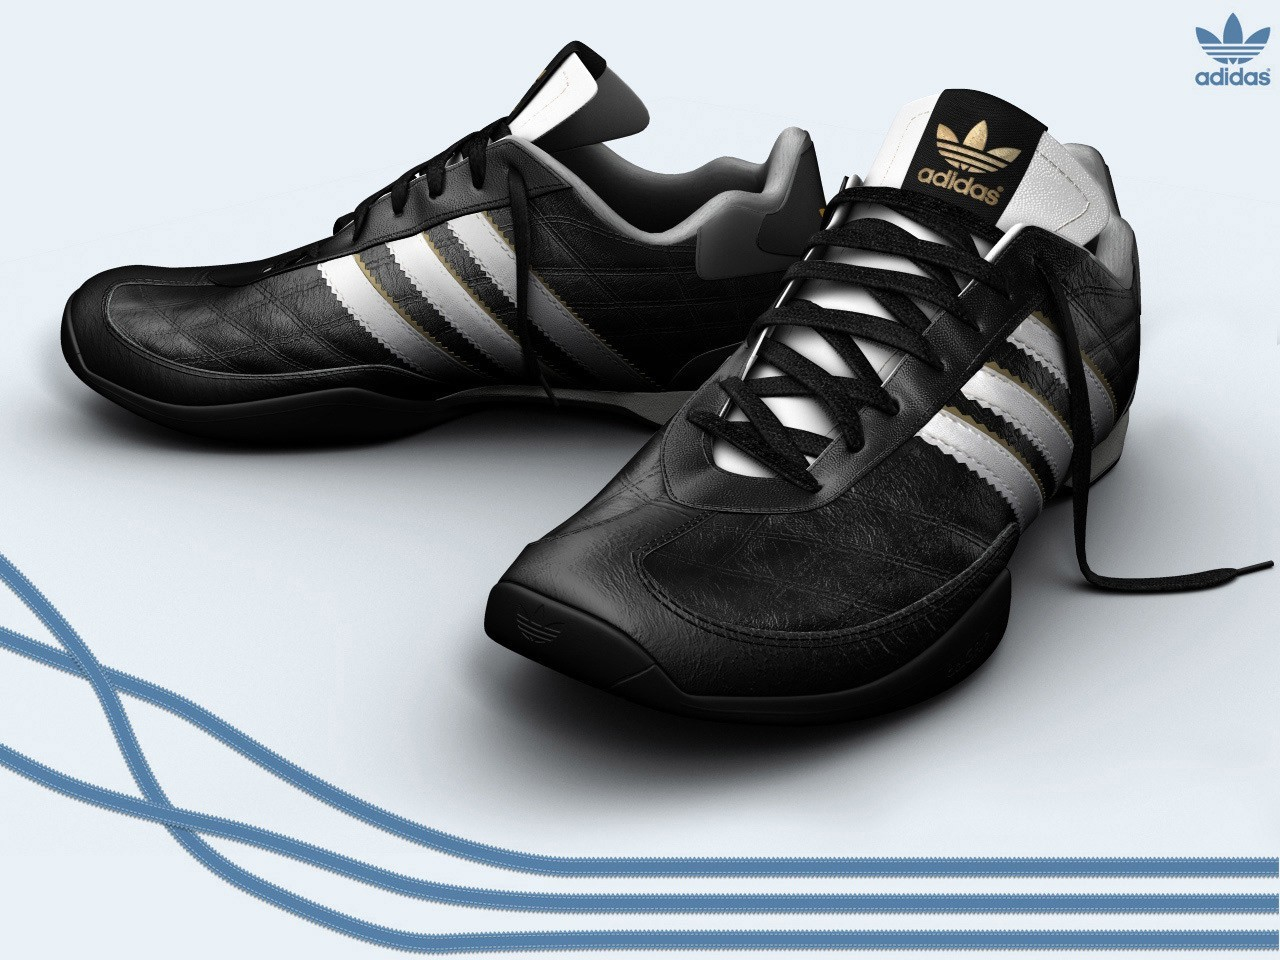 Adidas shoes by gode | 3D | CGSociety